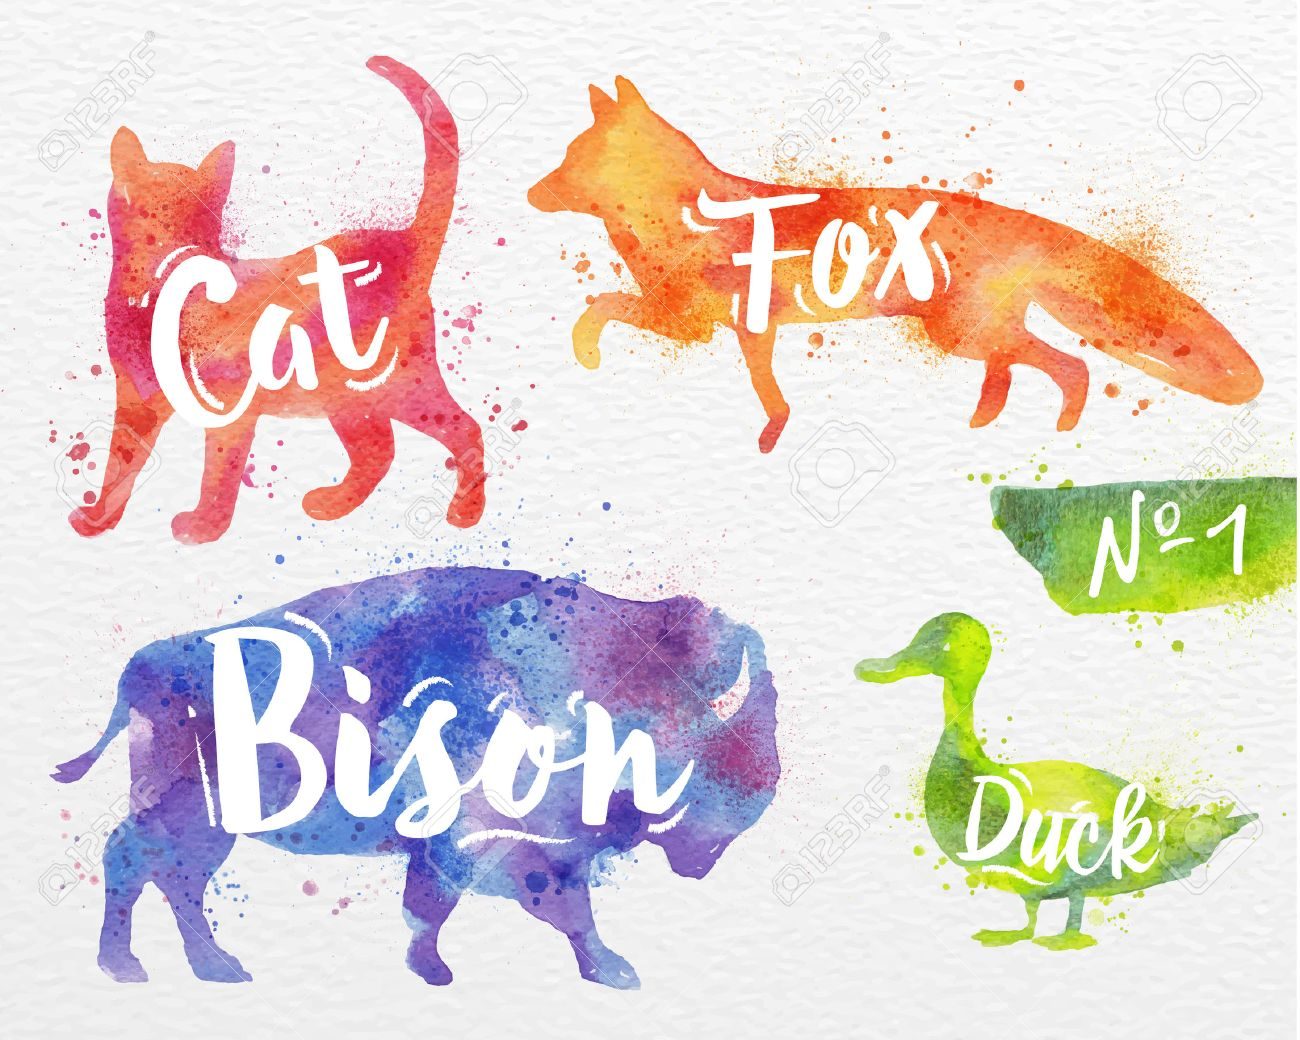 Drawingcolor Silhouettes Of Animal Cat Fox Bison Duck Drawing Color Paint